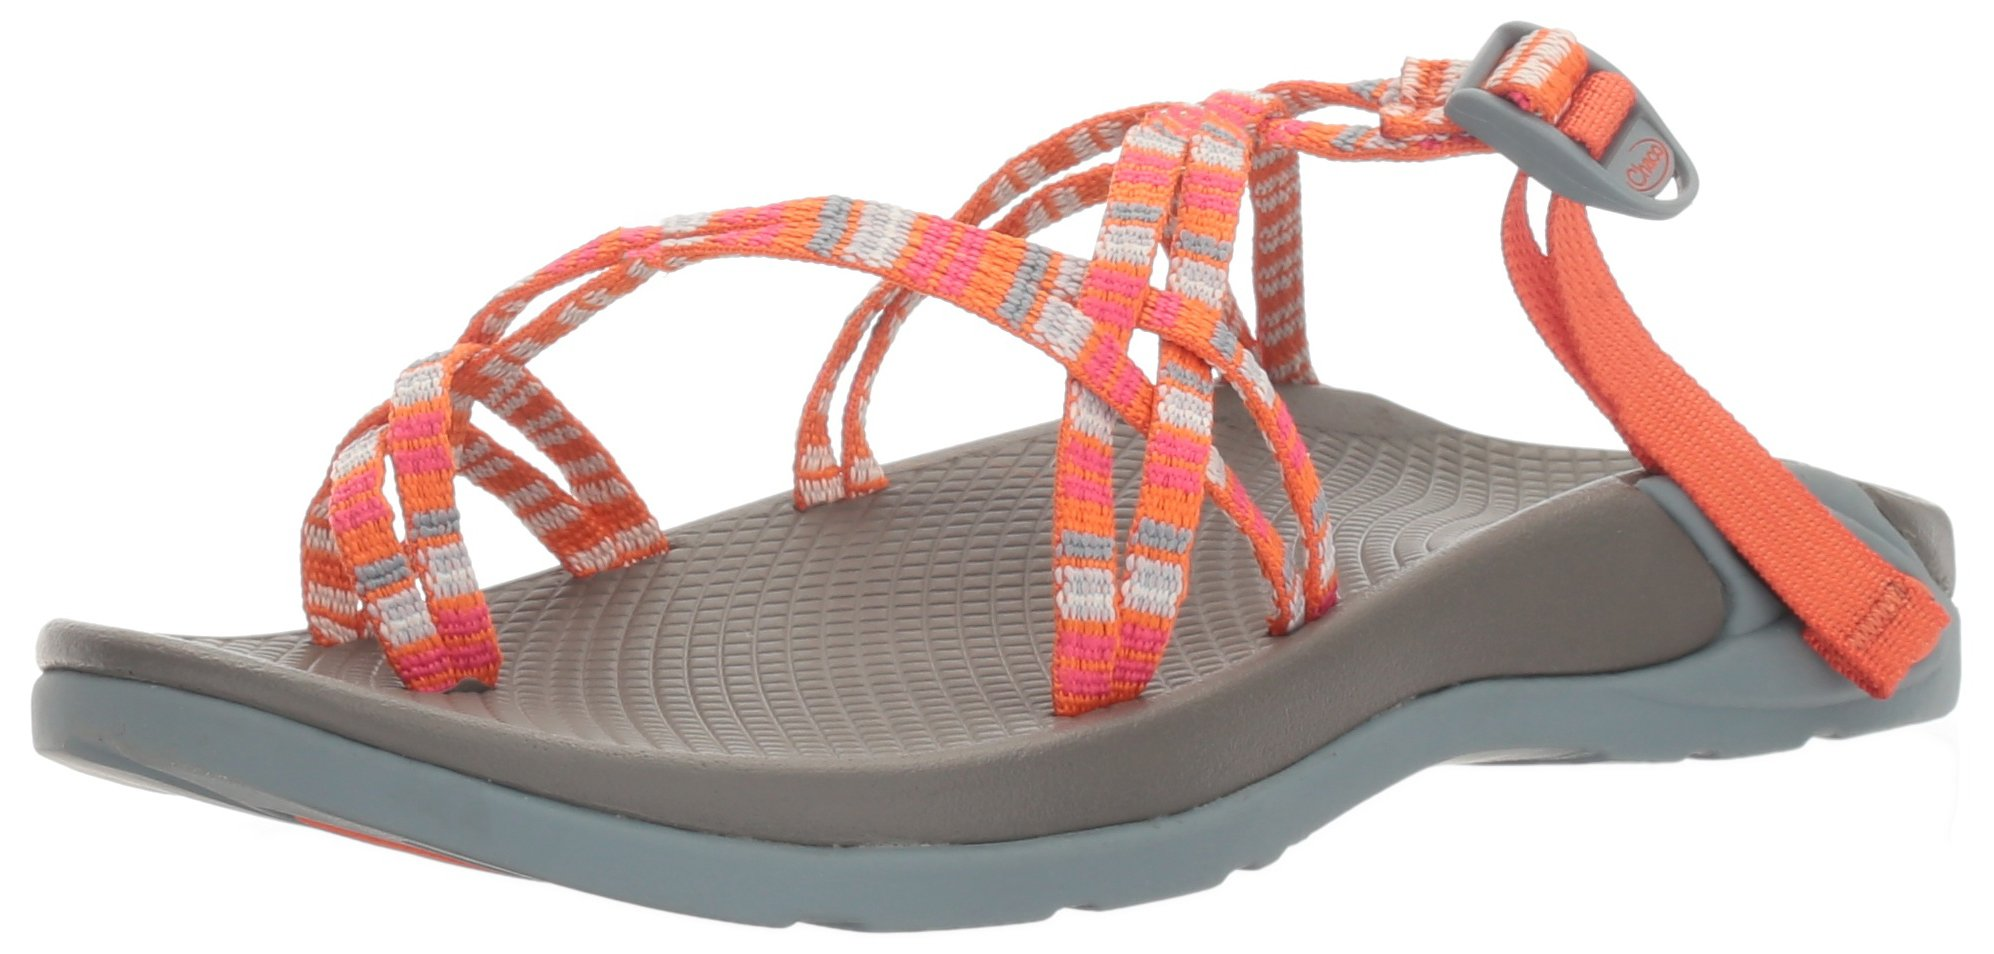 Chaco Women's Zong X Ecotread Sport Sandal, Banded Tangerine, 9 M US